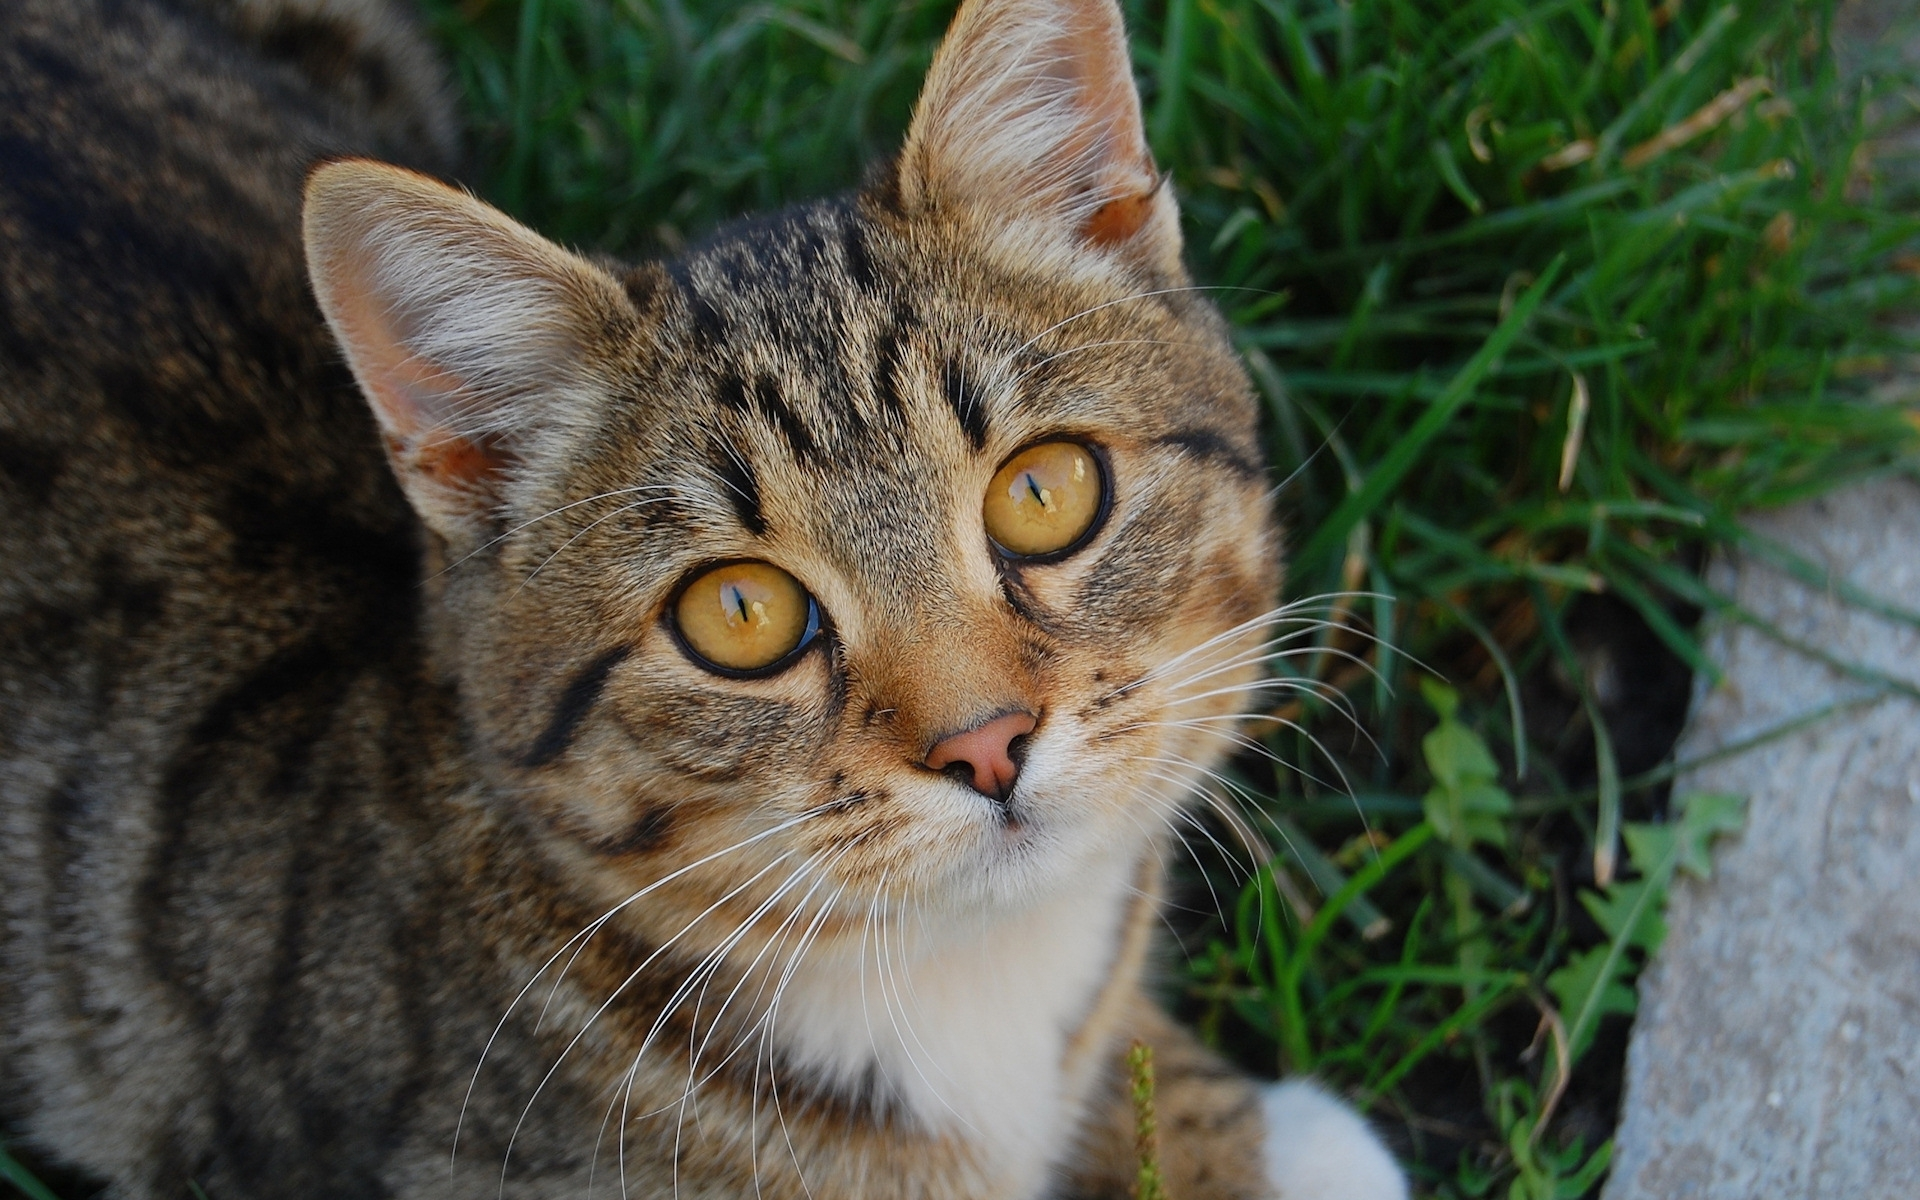 49507 download wallpaper Animals, Cats screensavers and pictures for free